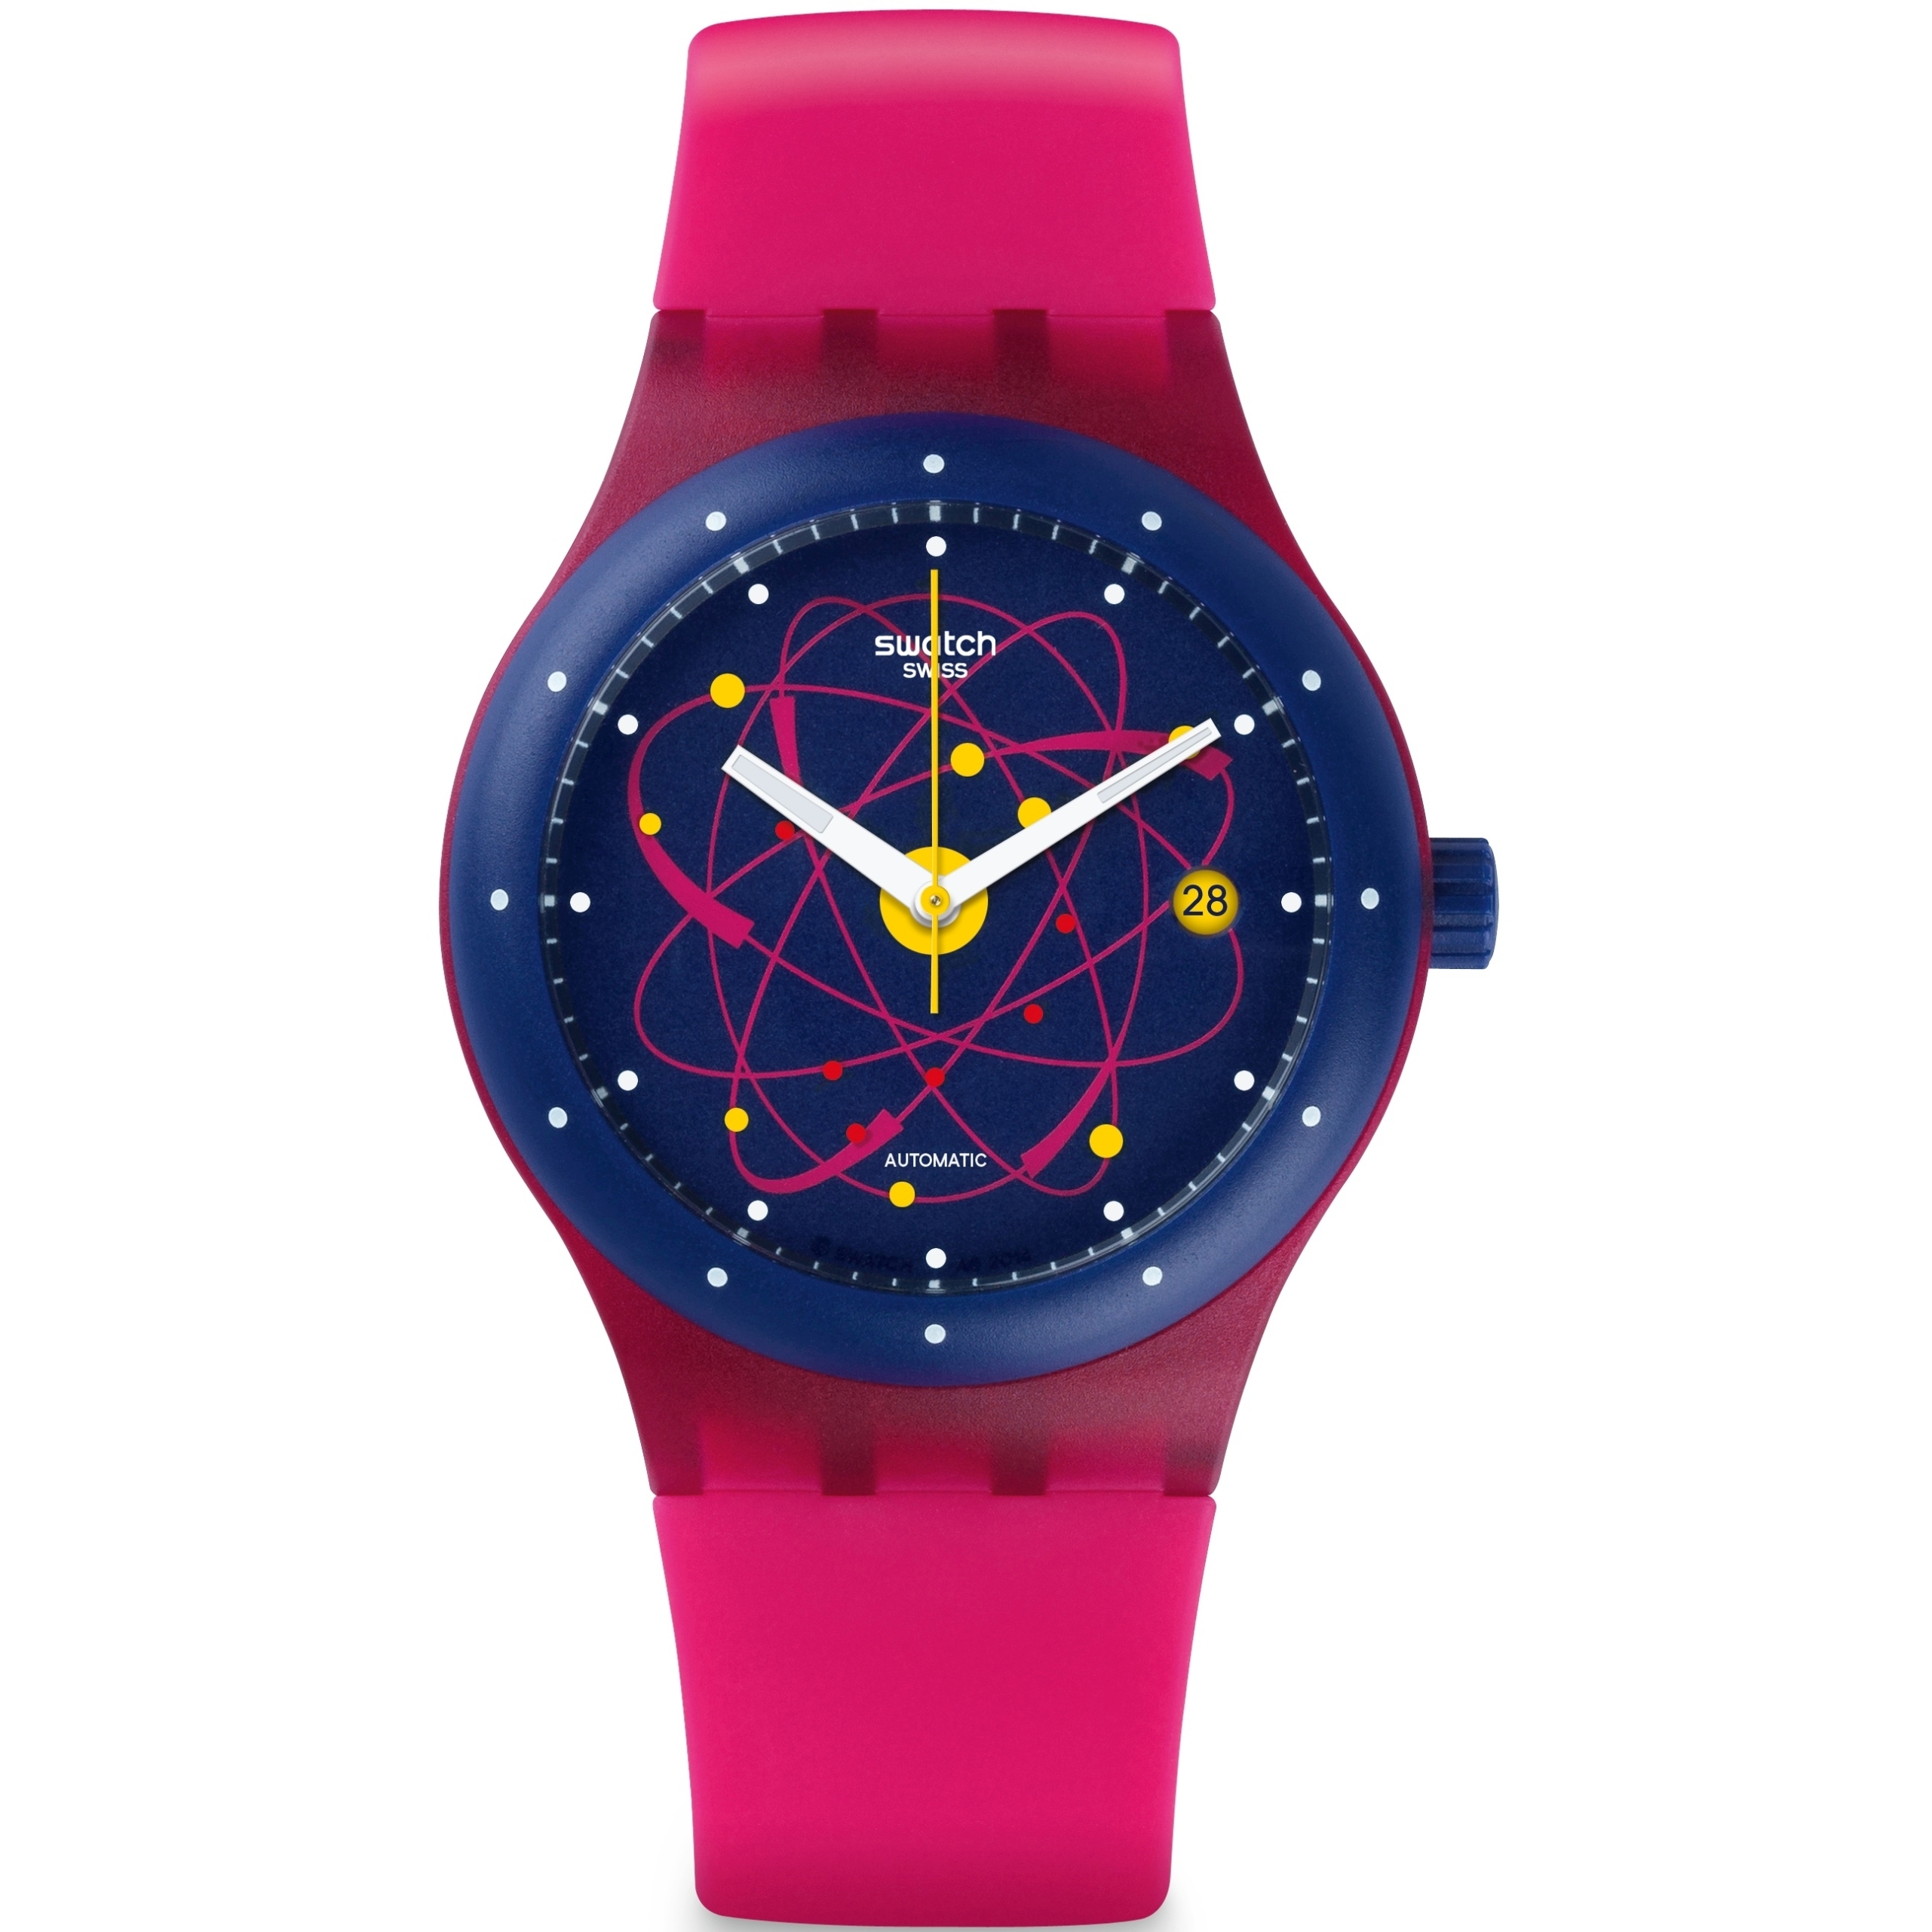 unisex for kids watches l collection girls rise up com design color michaelhfreelance switch swatch shopcom watch